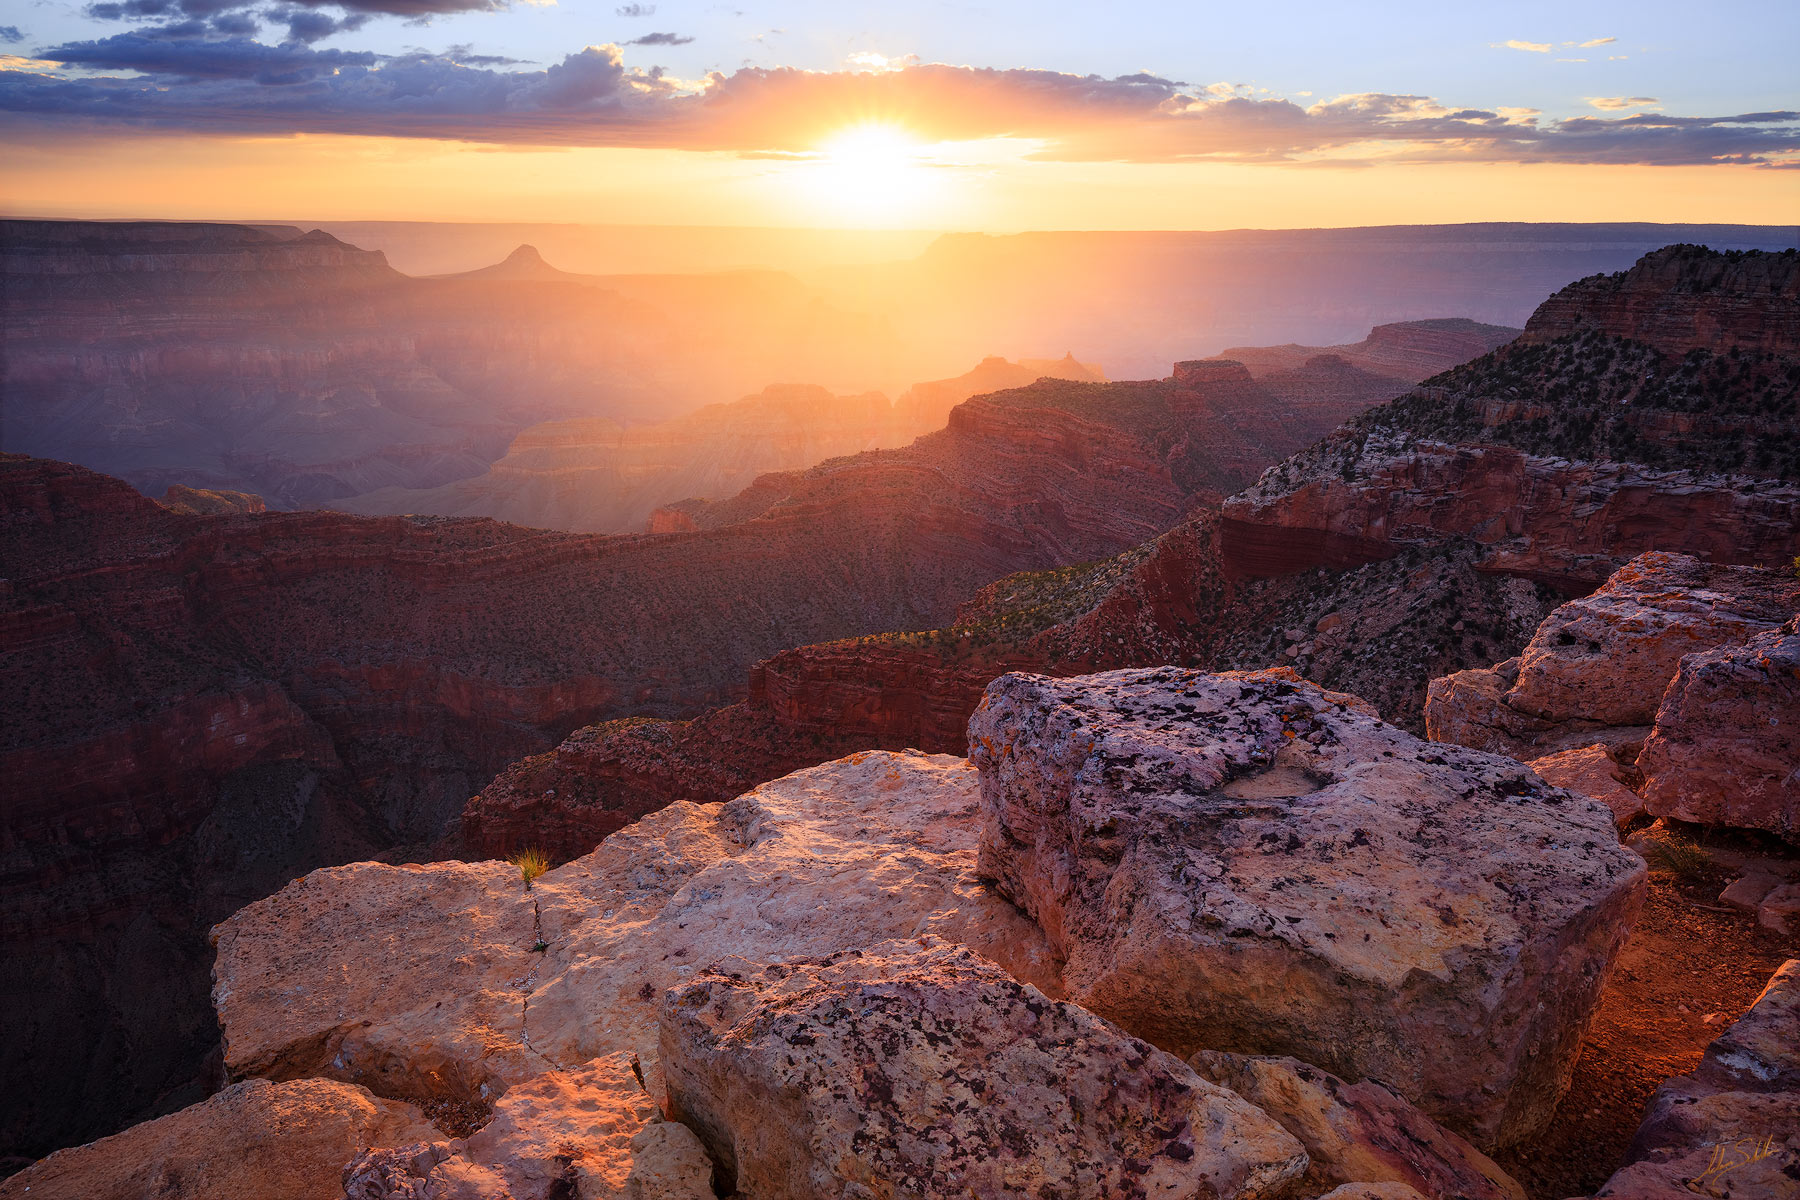 Remote, Backcountry, Grand Canyon, National Park, North Rim, Point Sublime, Sunset, photo